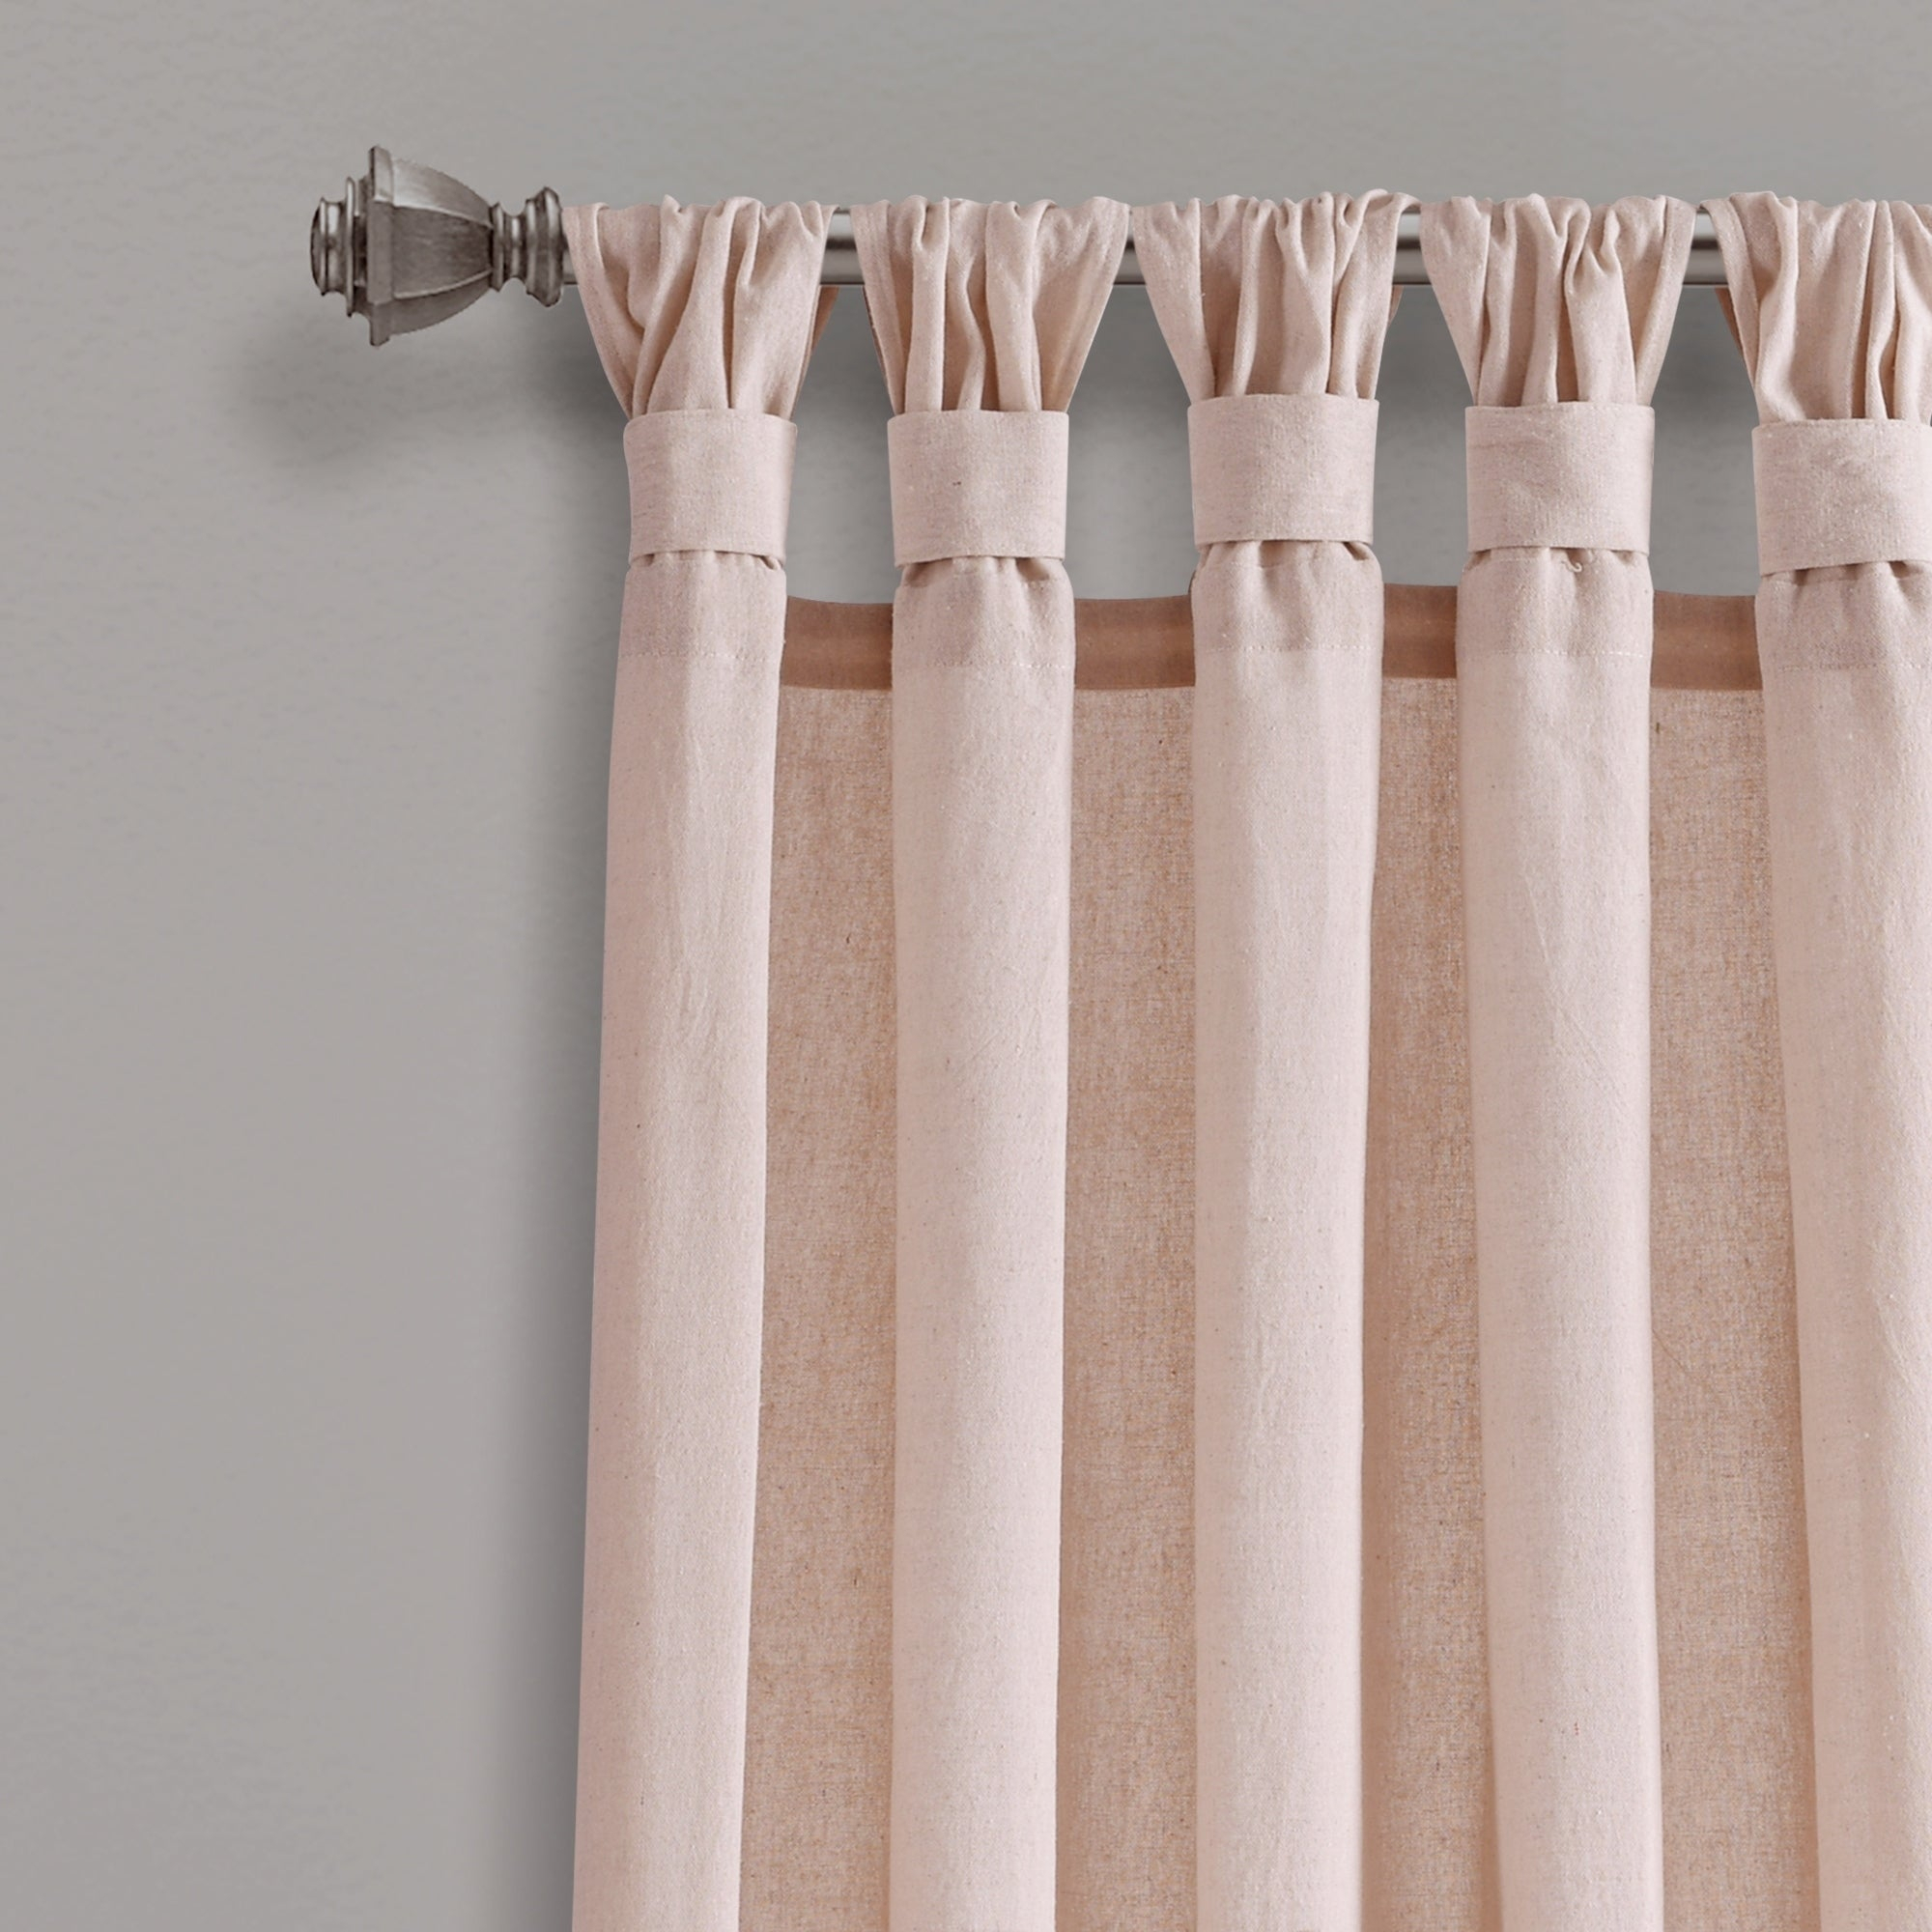 Porch & Den Alsea Burlap Knotted Tab Top Window Curtain Panel Pair With Regard To Knotted Tab Top Window Curtain Panel Pairs (View 3 of 20)